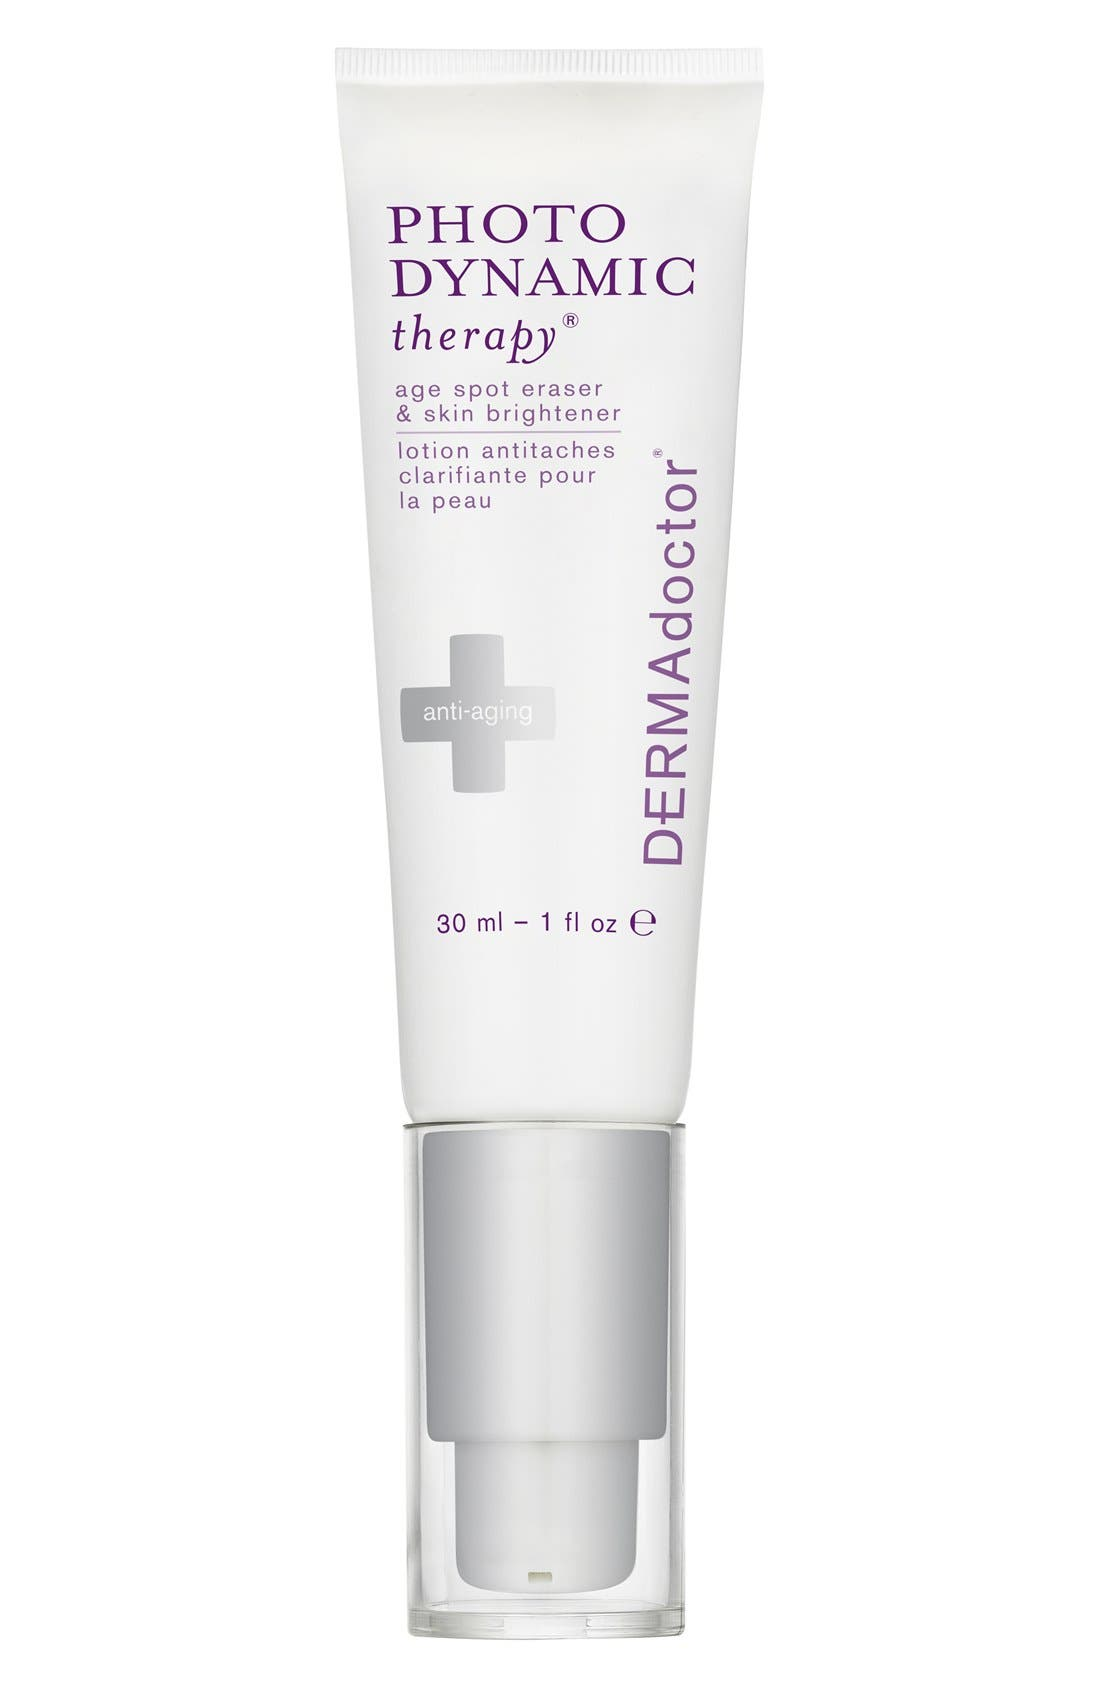 DERMAdoctor® 'Photodynamic Therapy' Age Spot Eraser & Skin Brightener